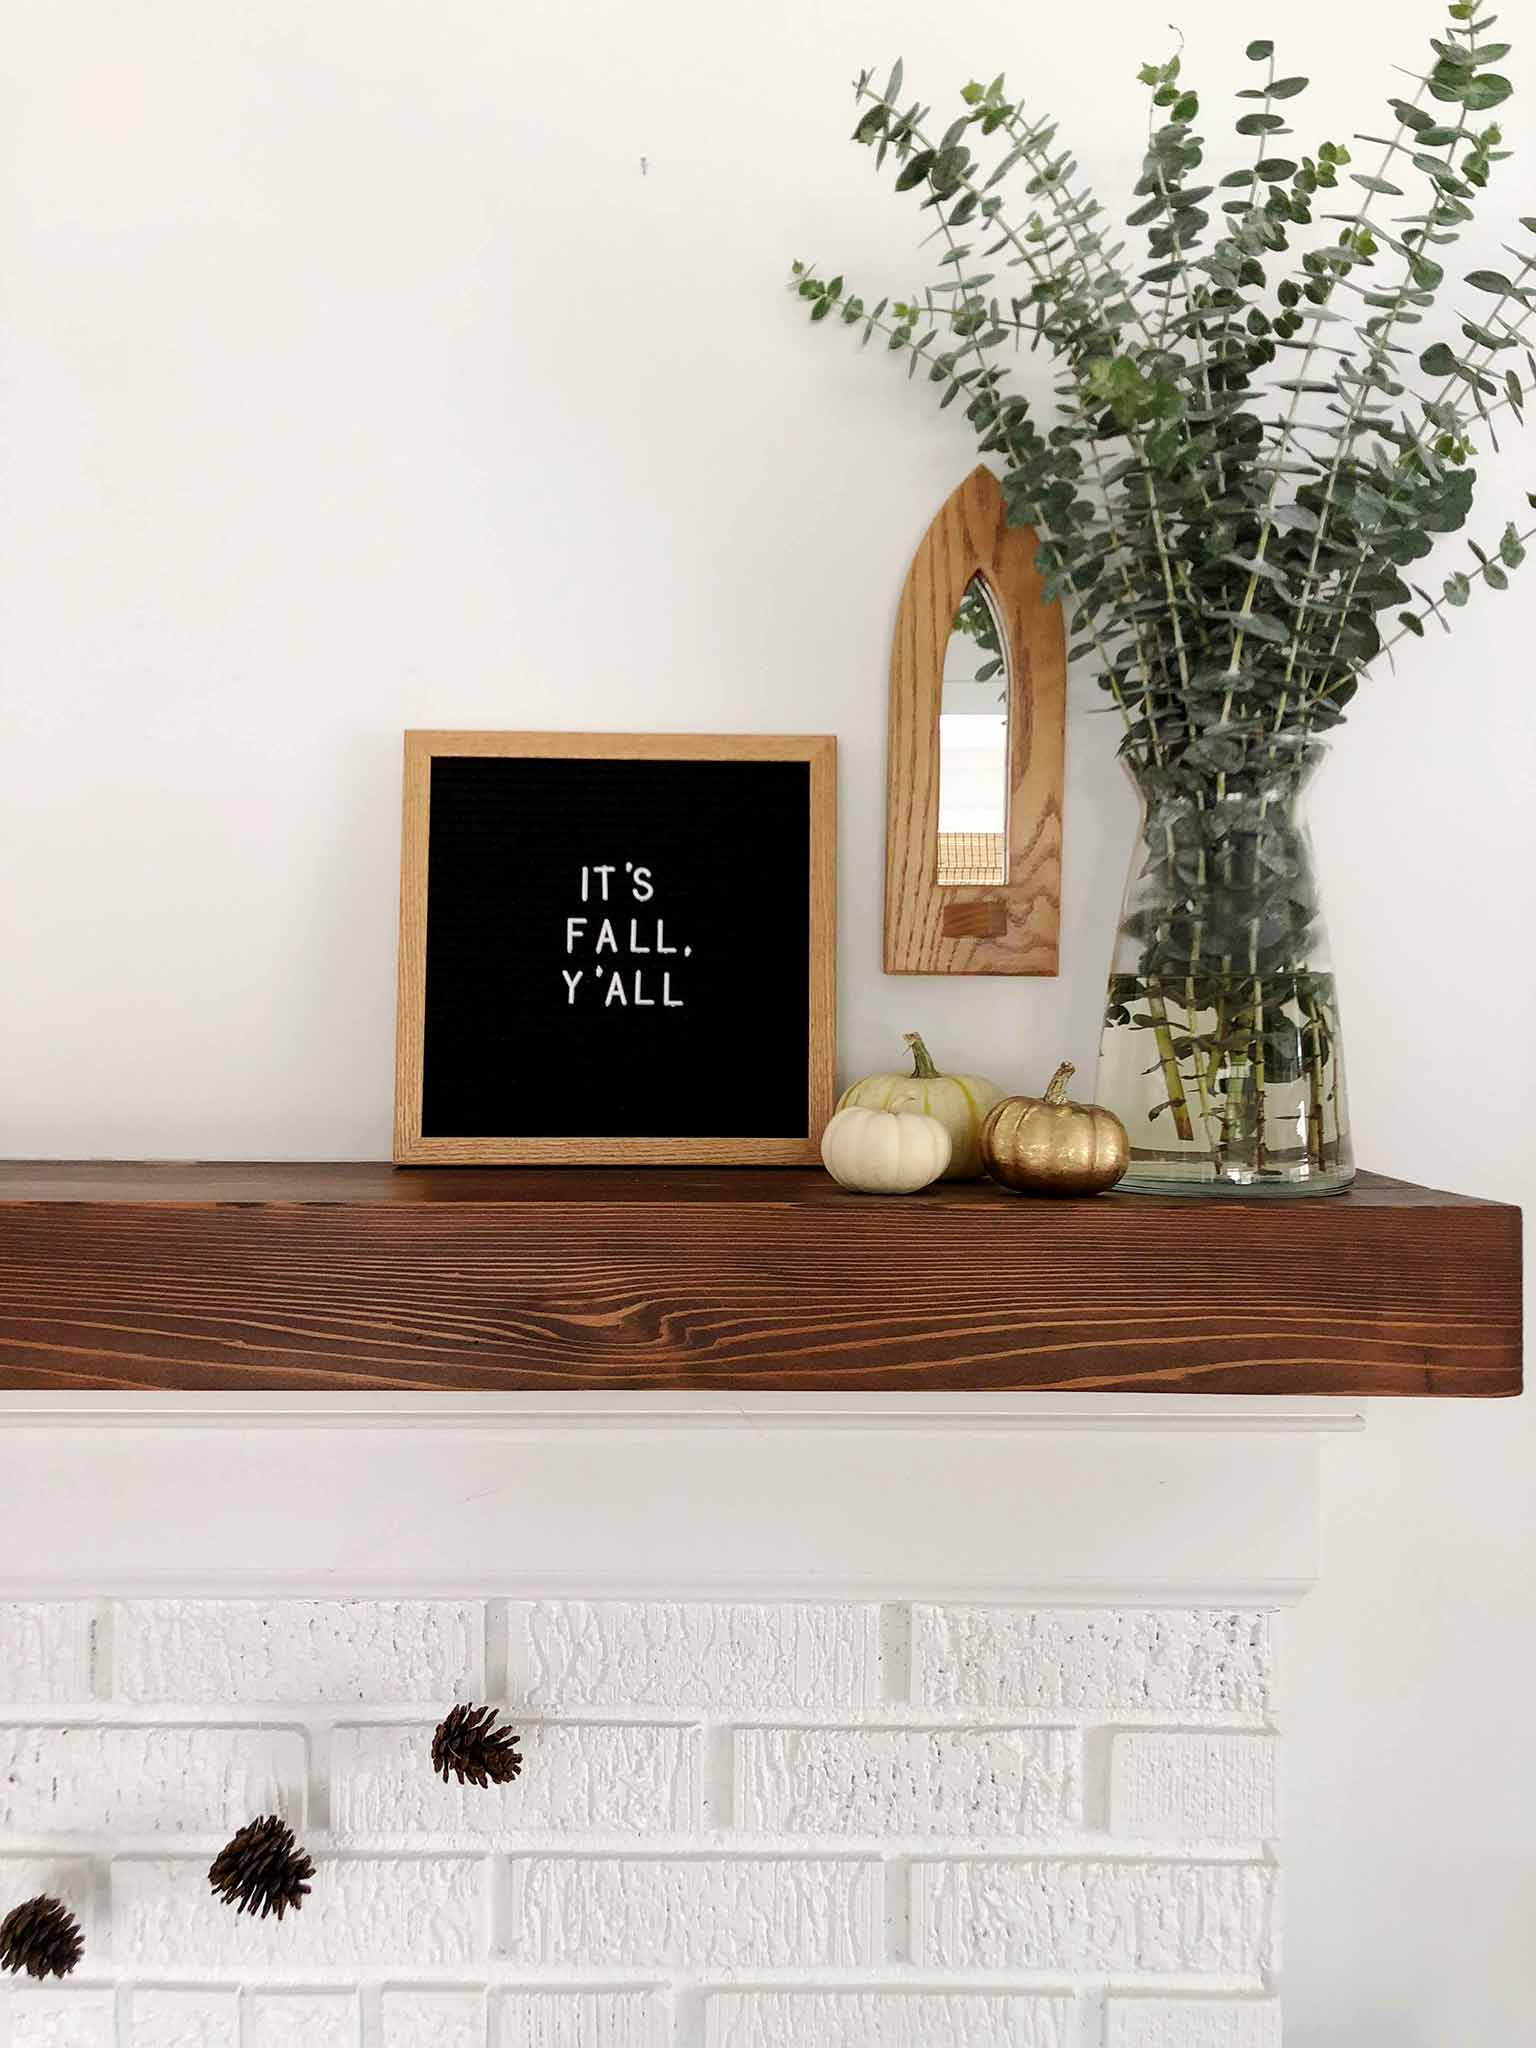 Decorative Items For Living Room: Simple Fall Decor For The Uncluttered Home